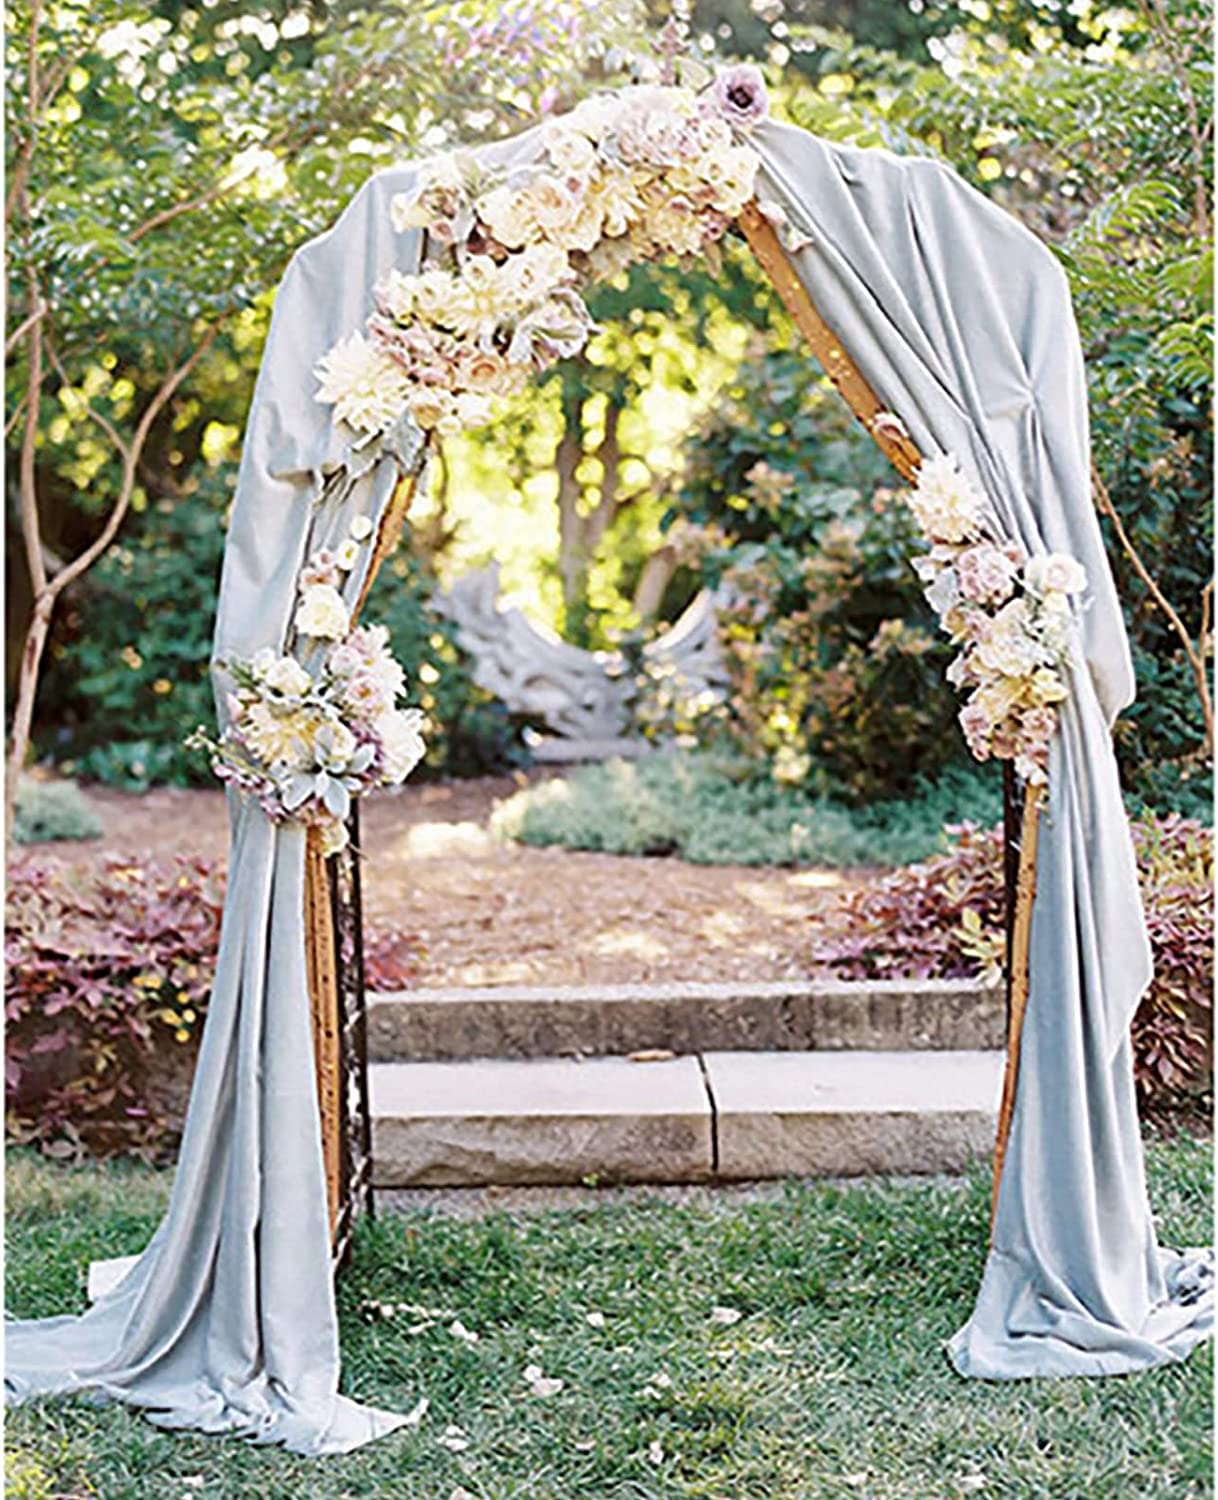 Rylod Super beauty overseas product restock quality top 7.5 Ft Iron Wedding Arbor Arch wi Outdoor Decorative